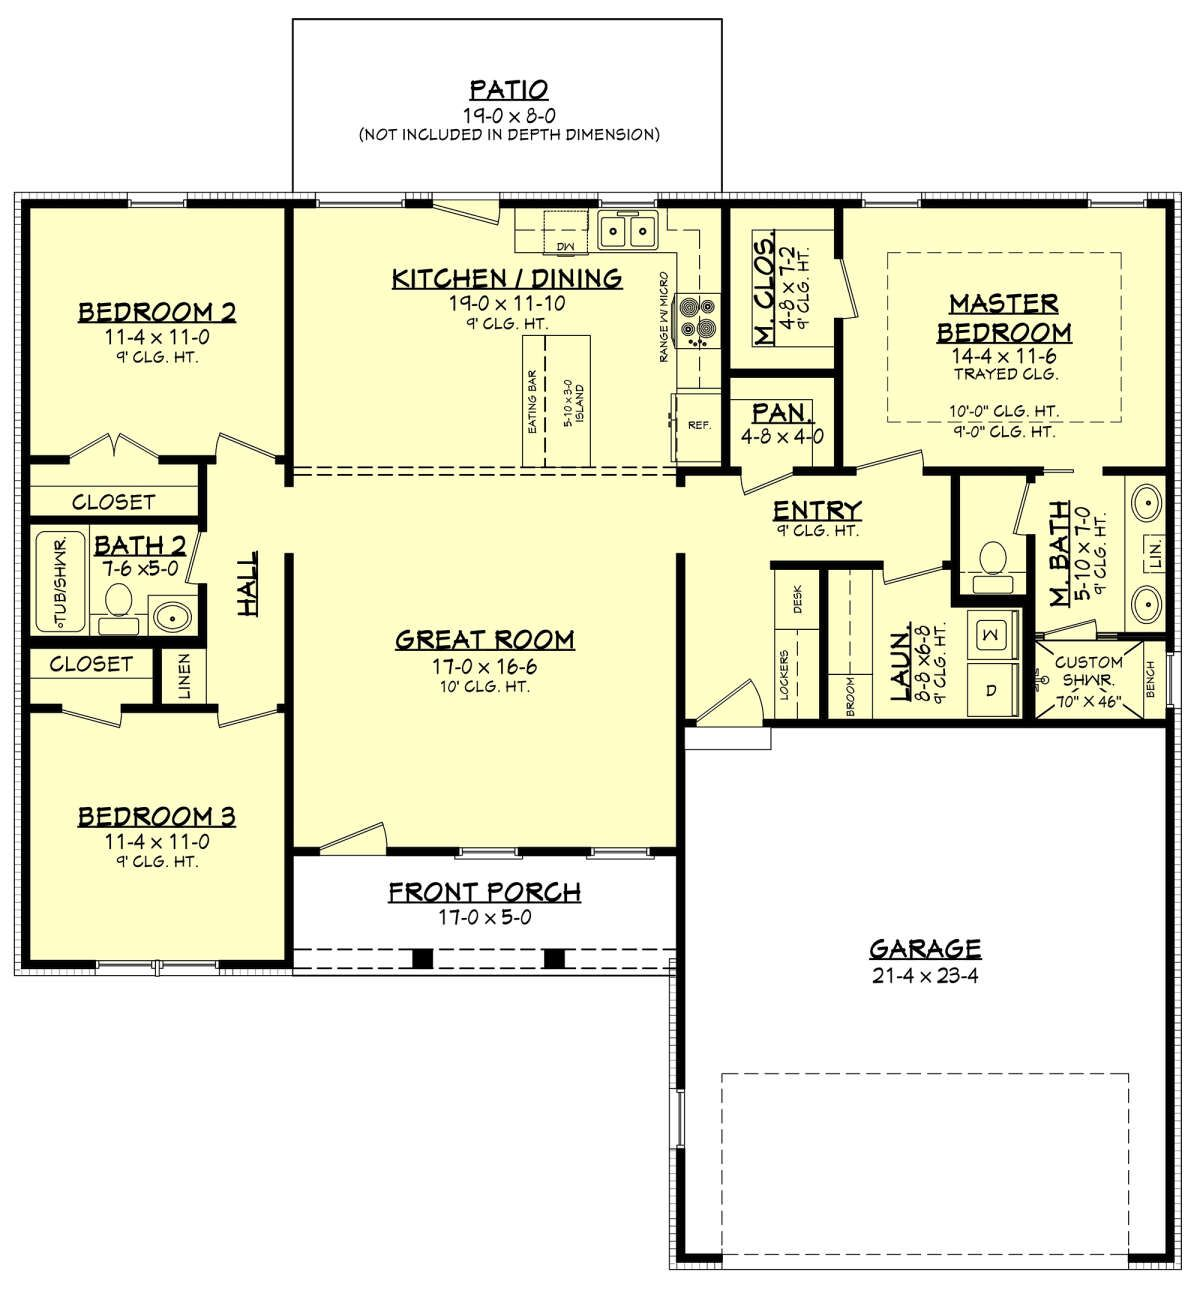 House Plan 041 00211 Modern Farmhouse Plan 1 416 Square Feet 3 Bedrooms 2 Bathrooms Farmhouse Plans Farmhouse Style House Plans Farmhouse Style House